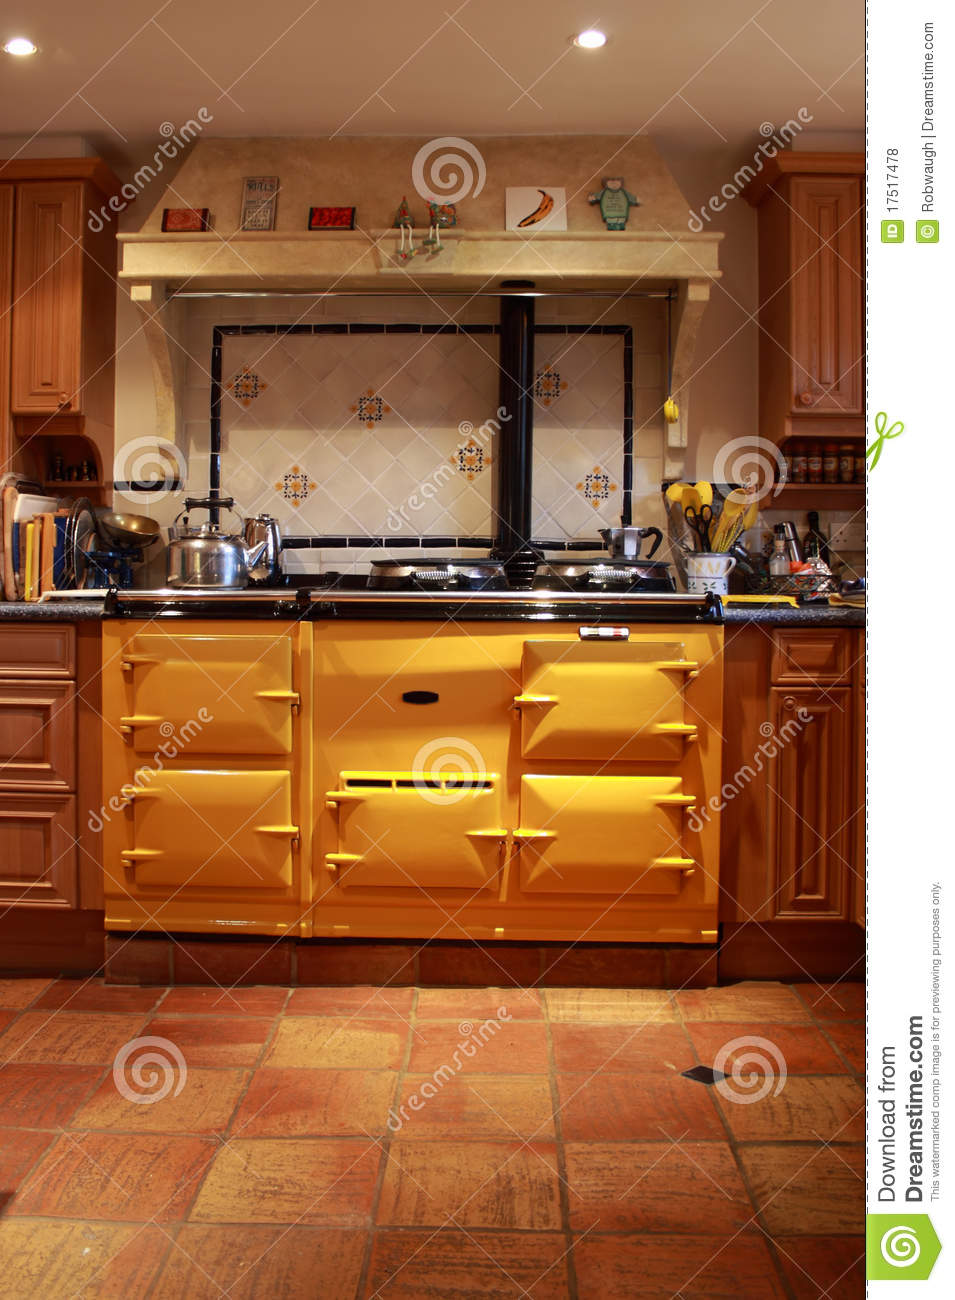 Yellow Range Oven In A Lovely Kitchen Royalty Free Stock